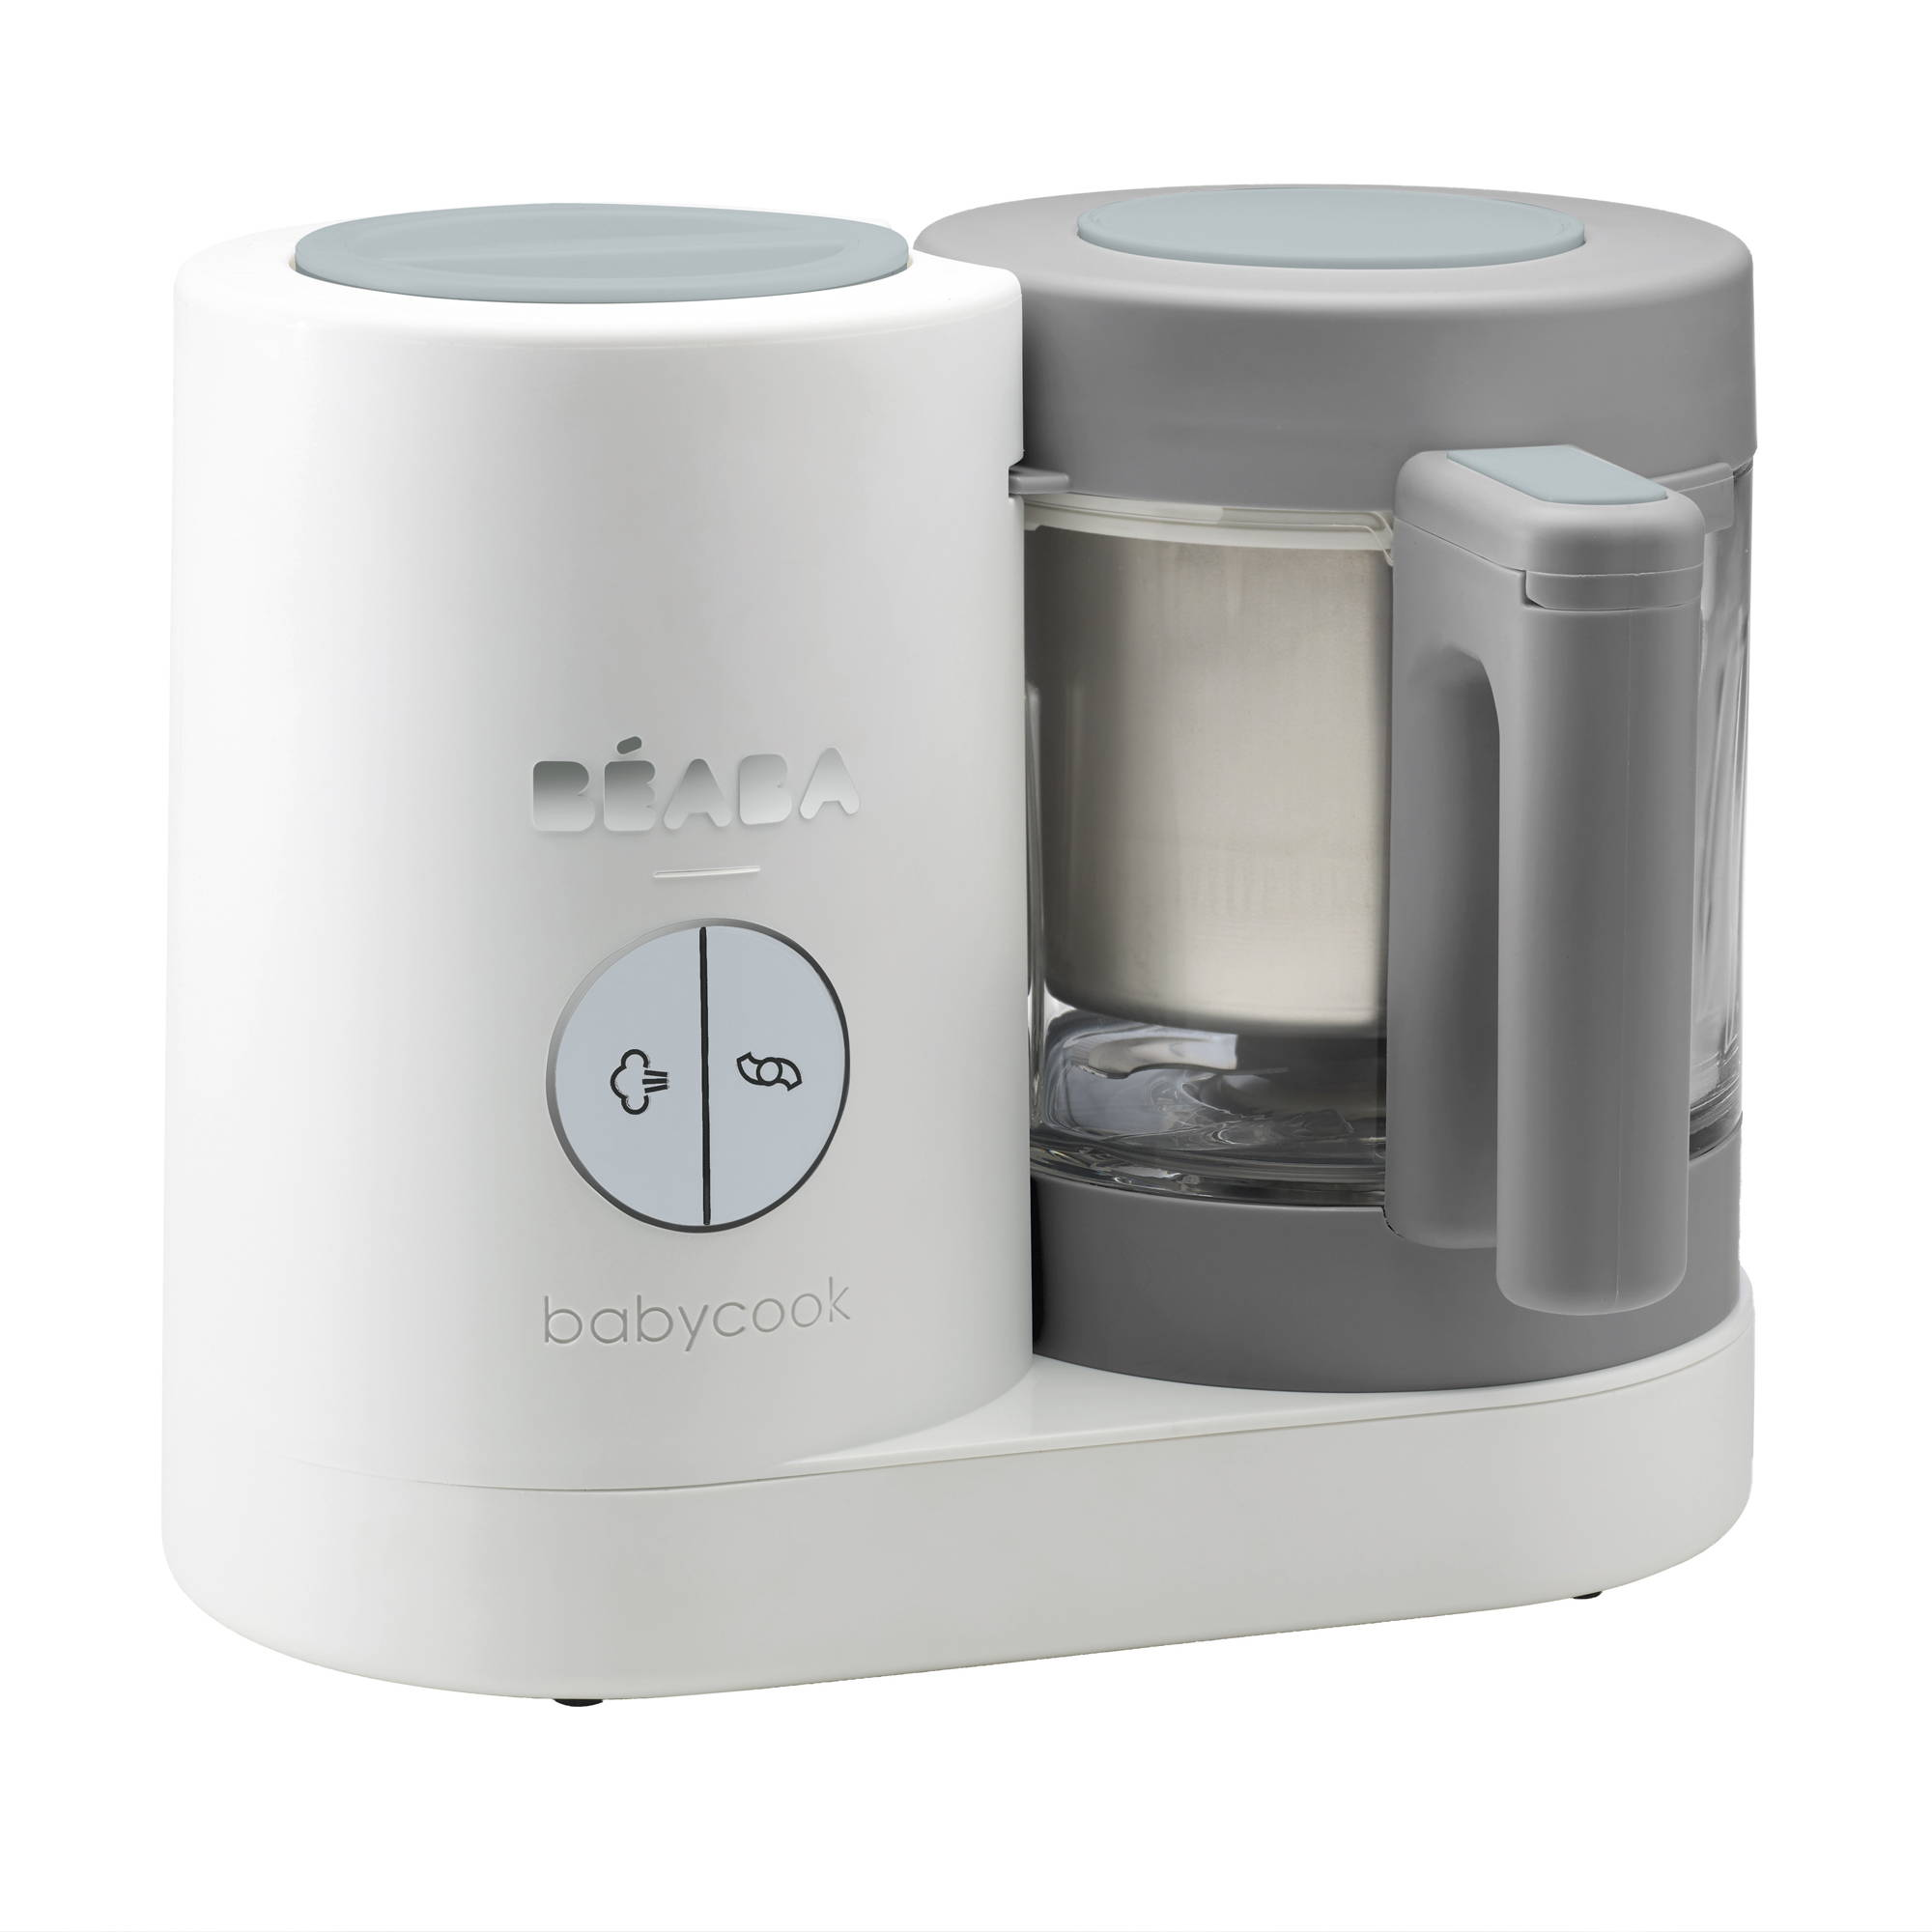 Beaba Babycook 4 in 1 Food Maker - Neo/Grey White